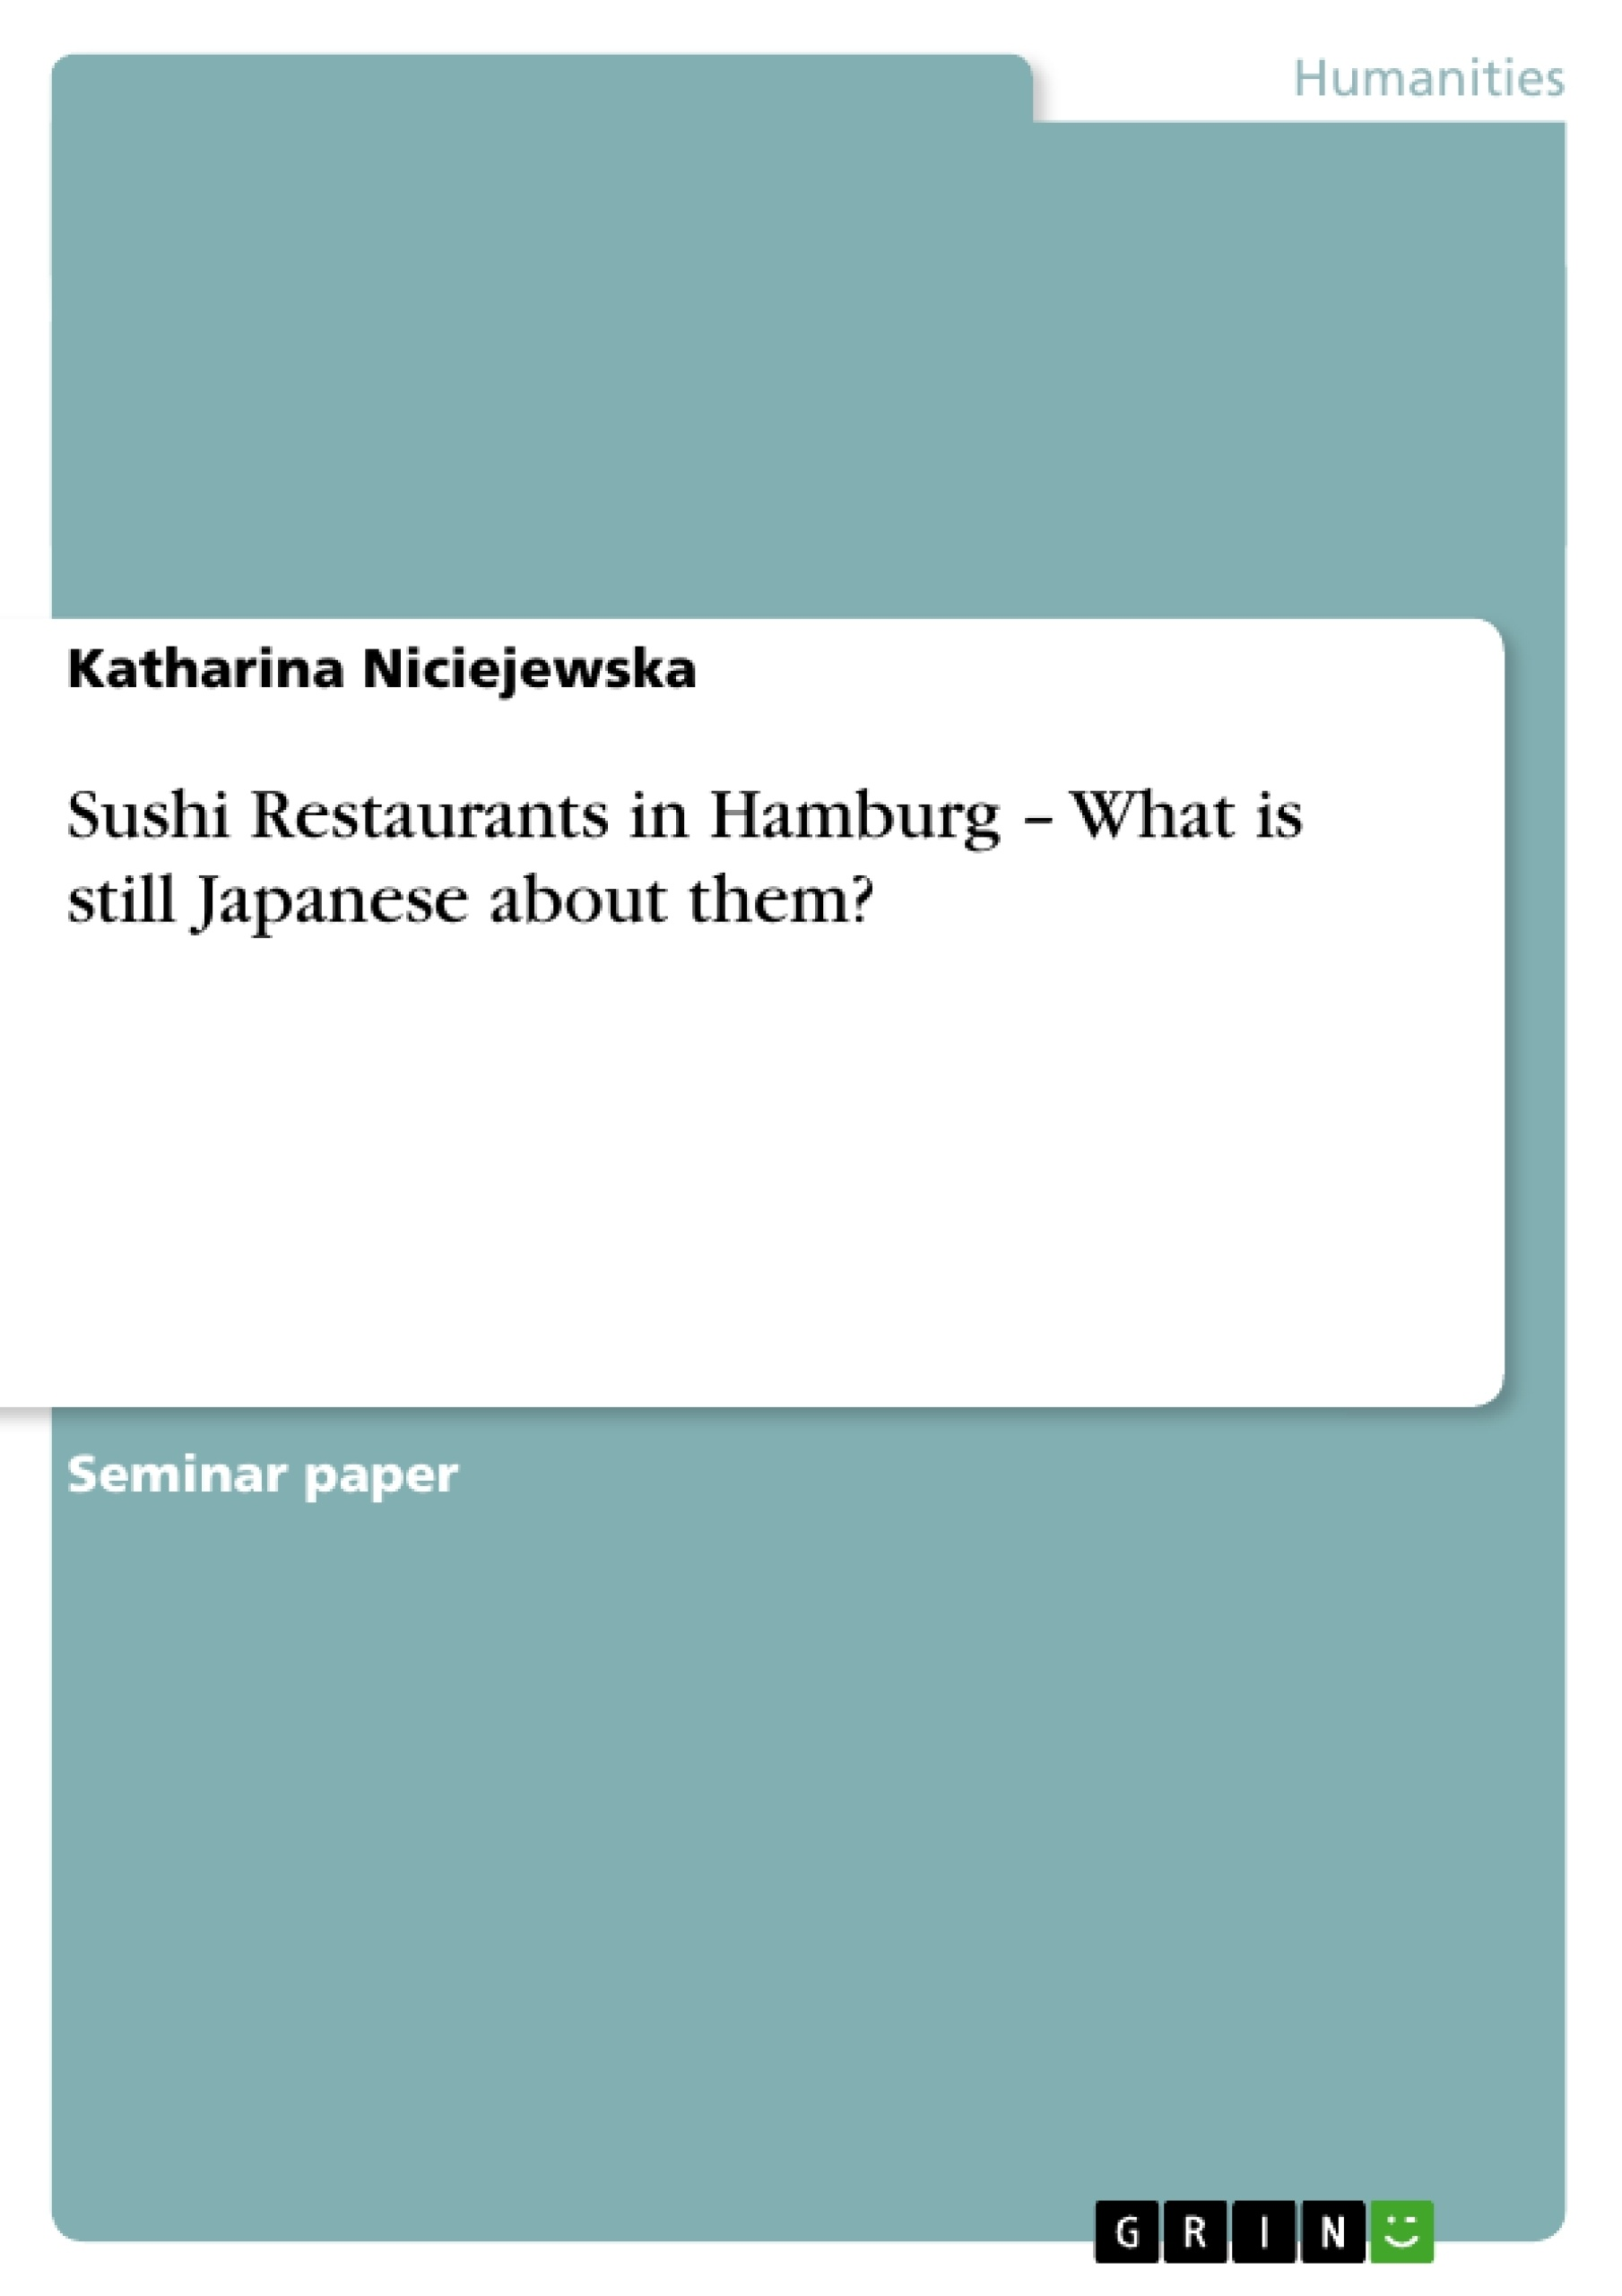 Title: Sushi Restaurants in Hamburg – What is still Japanese about them?